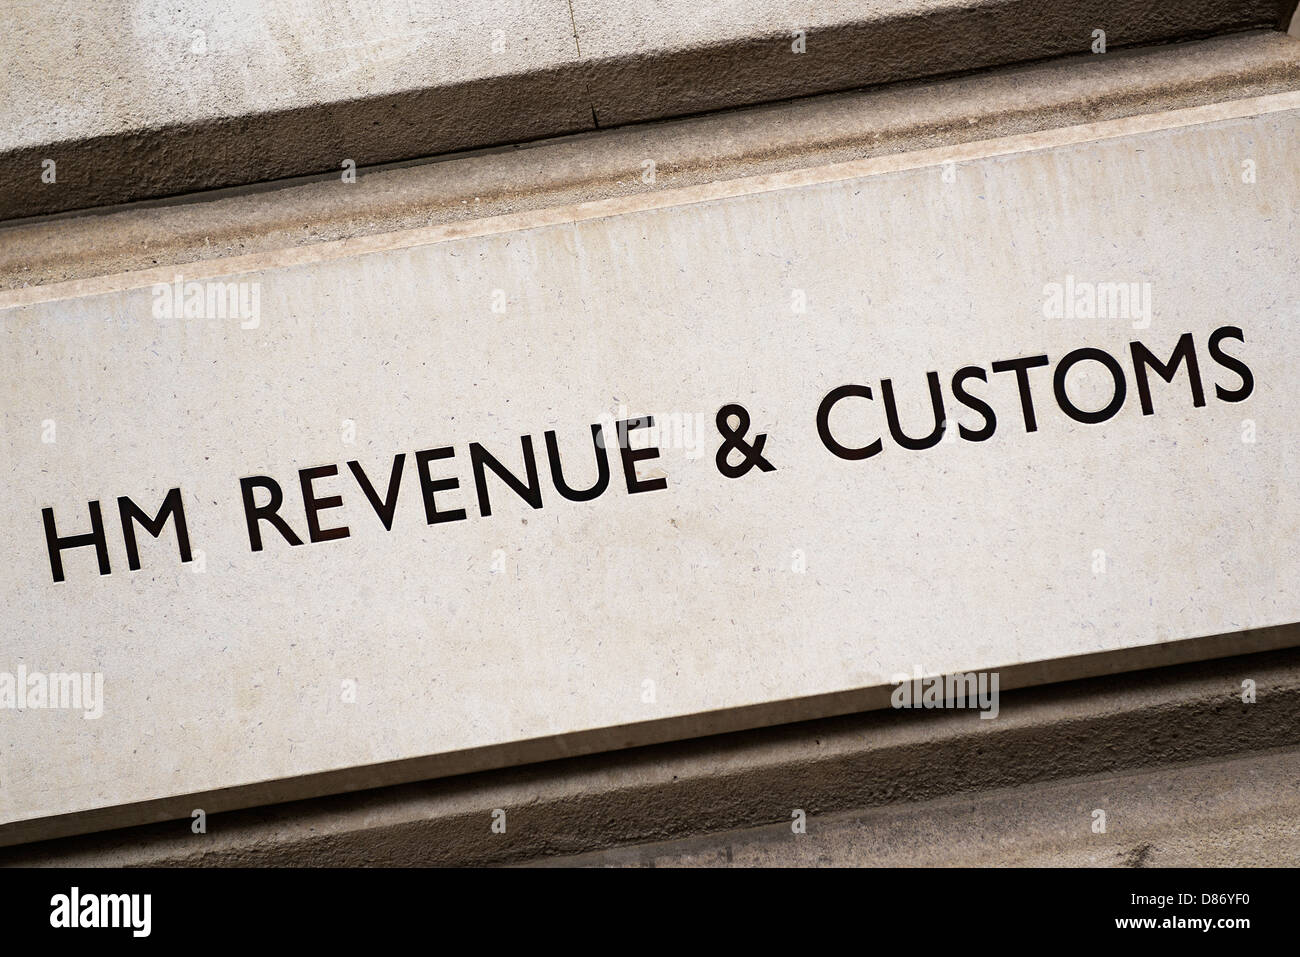 HM Revenue and Customs, Westminster, London, England, UK. Photo Stock